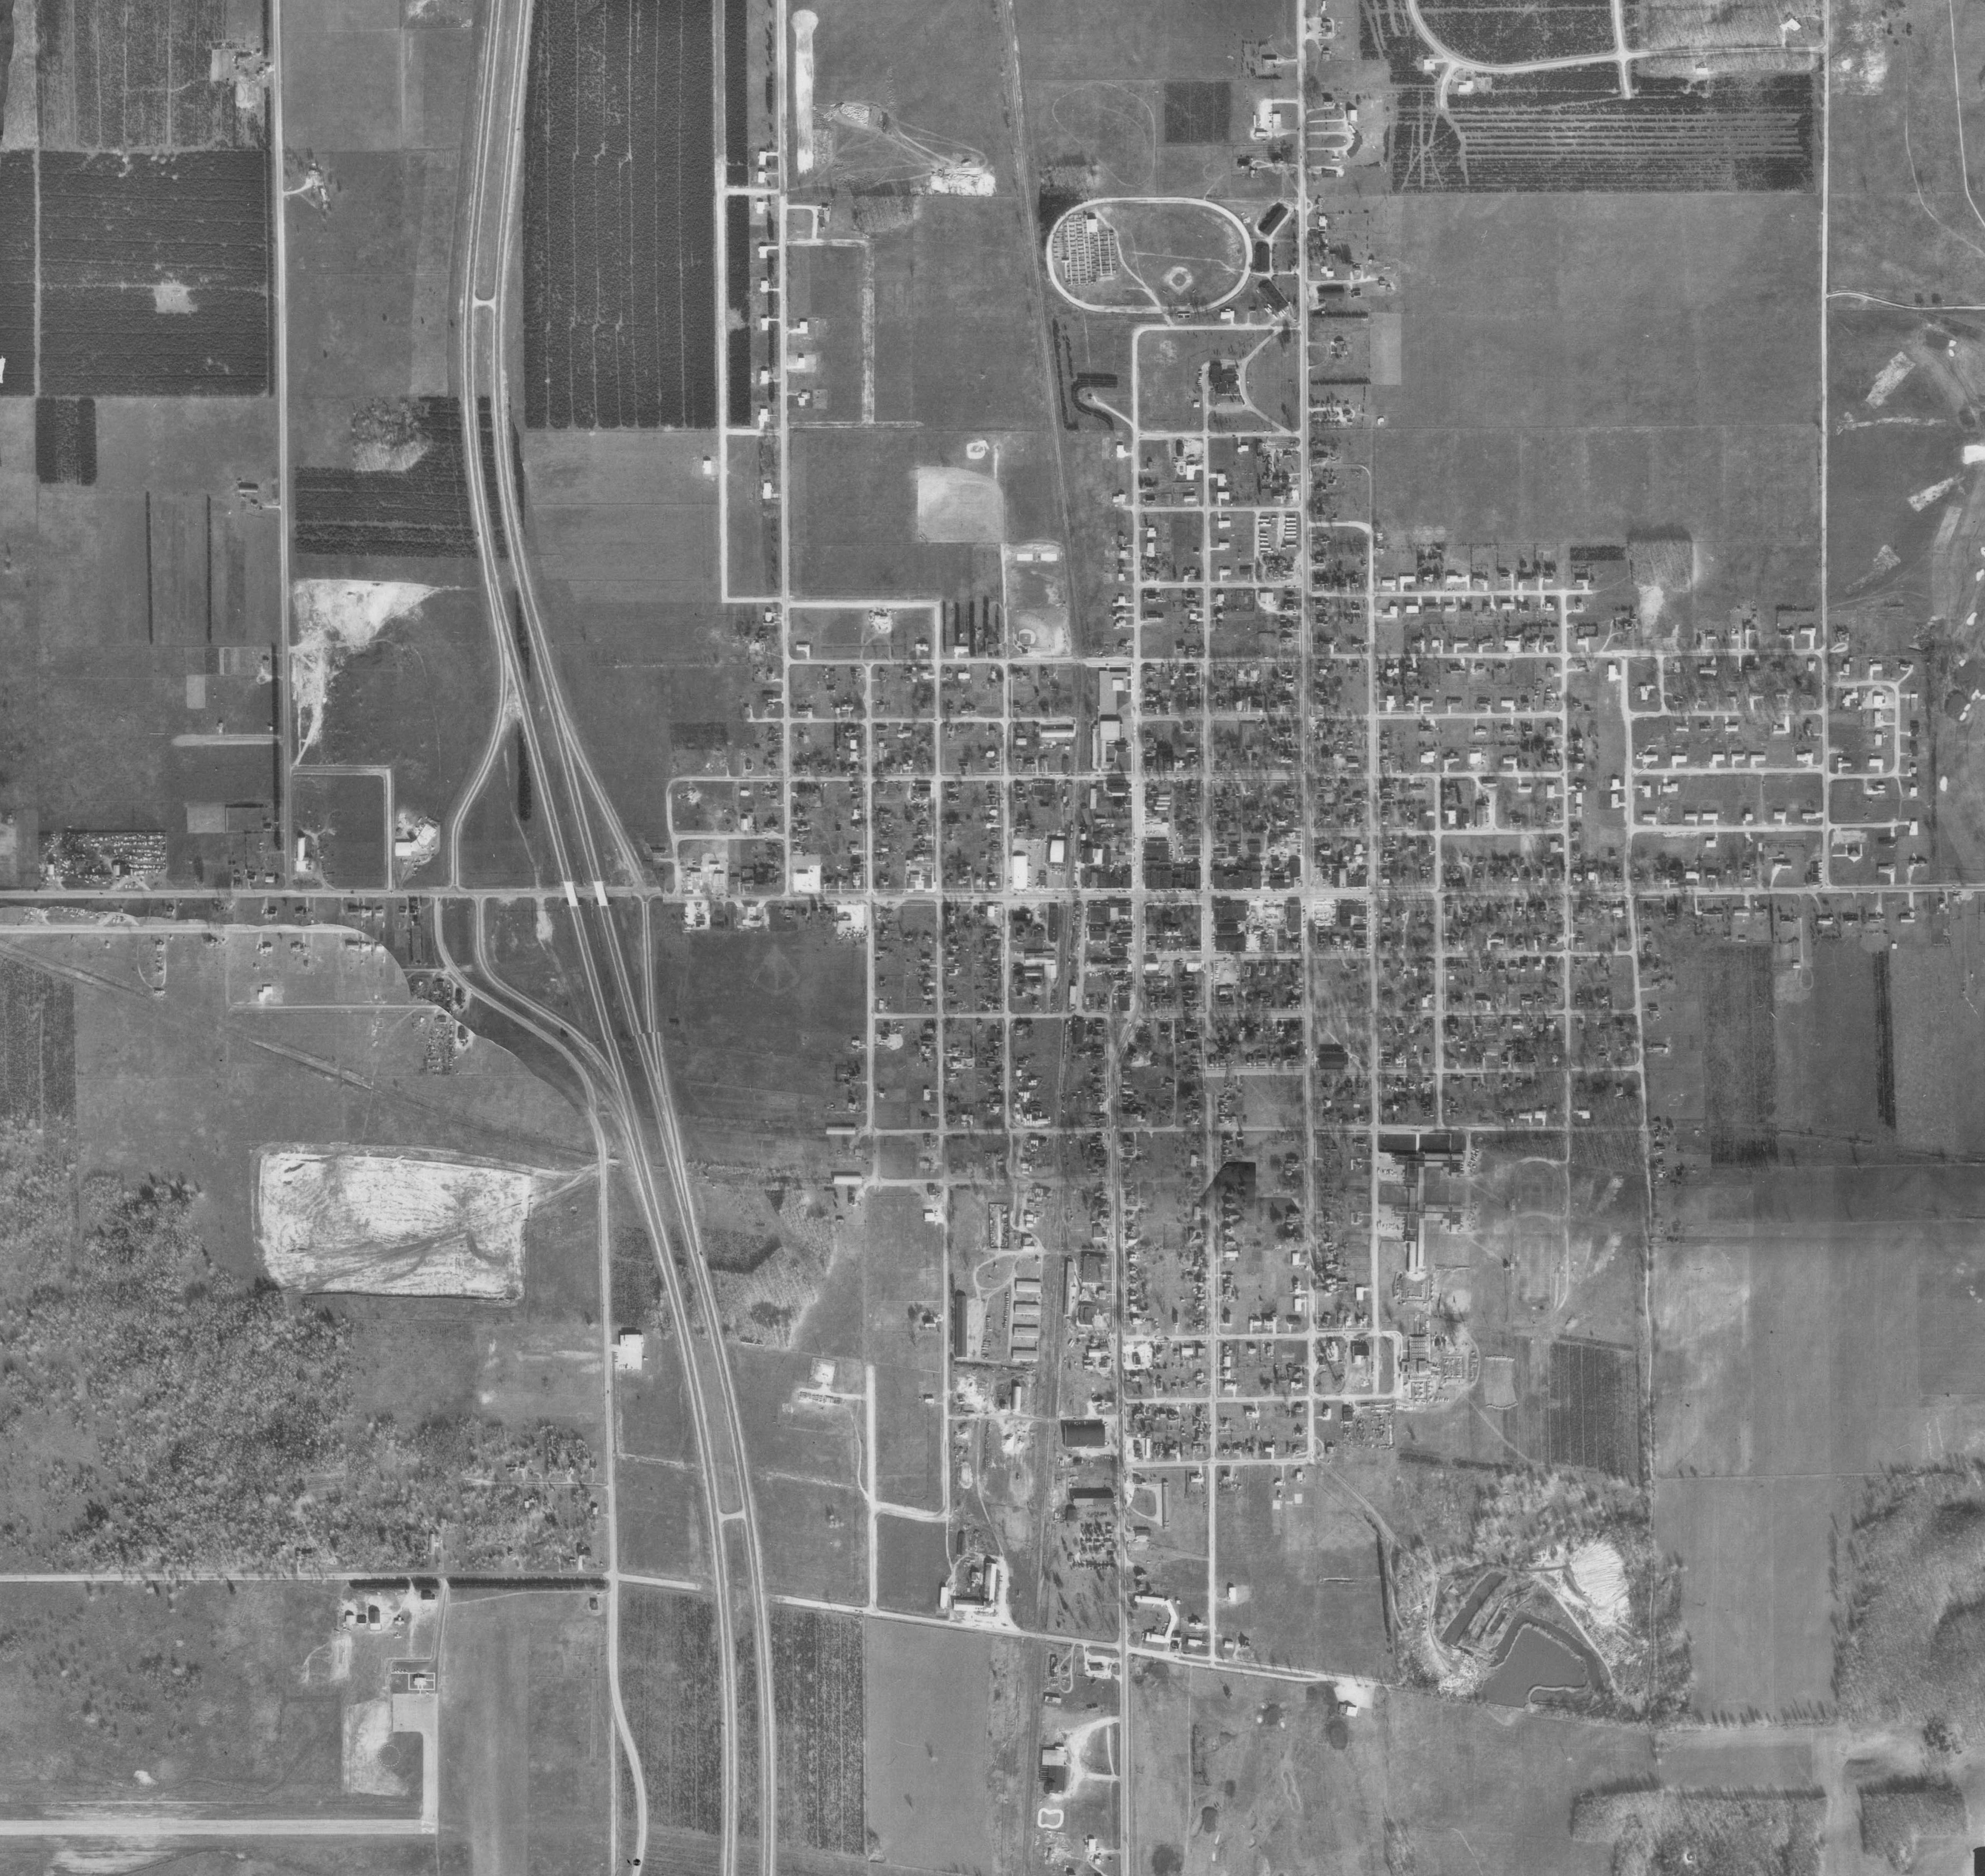 Aerial imagery archive historic photo.